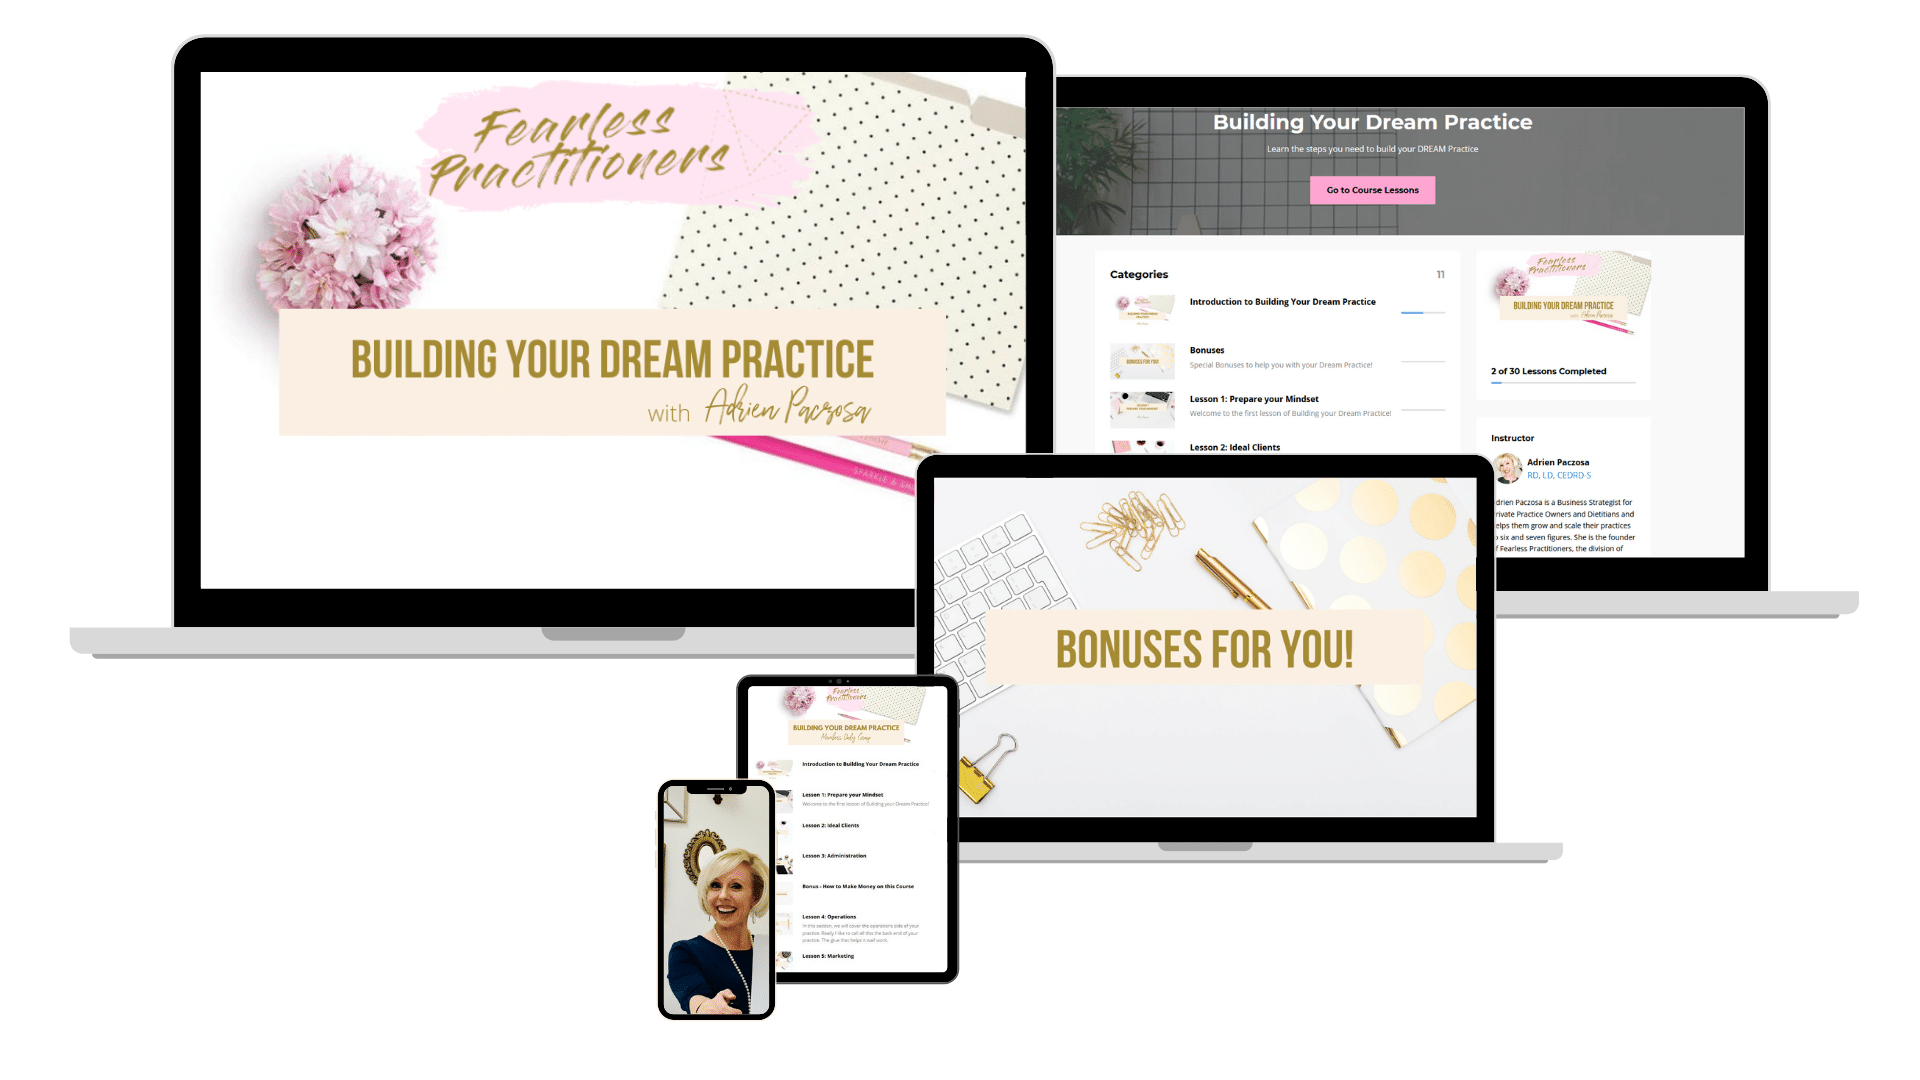 Building your Dream Practice cover